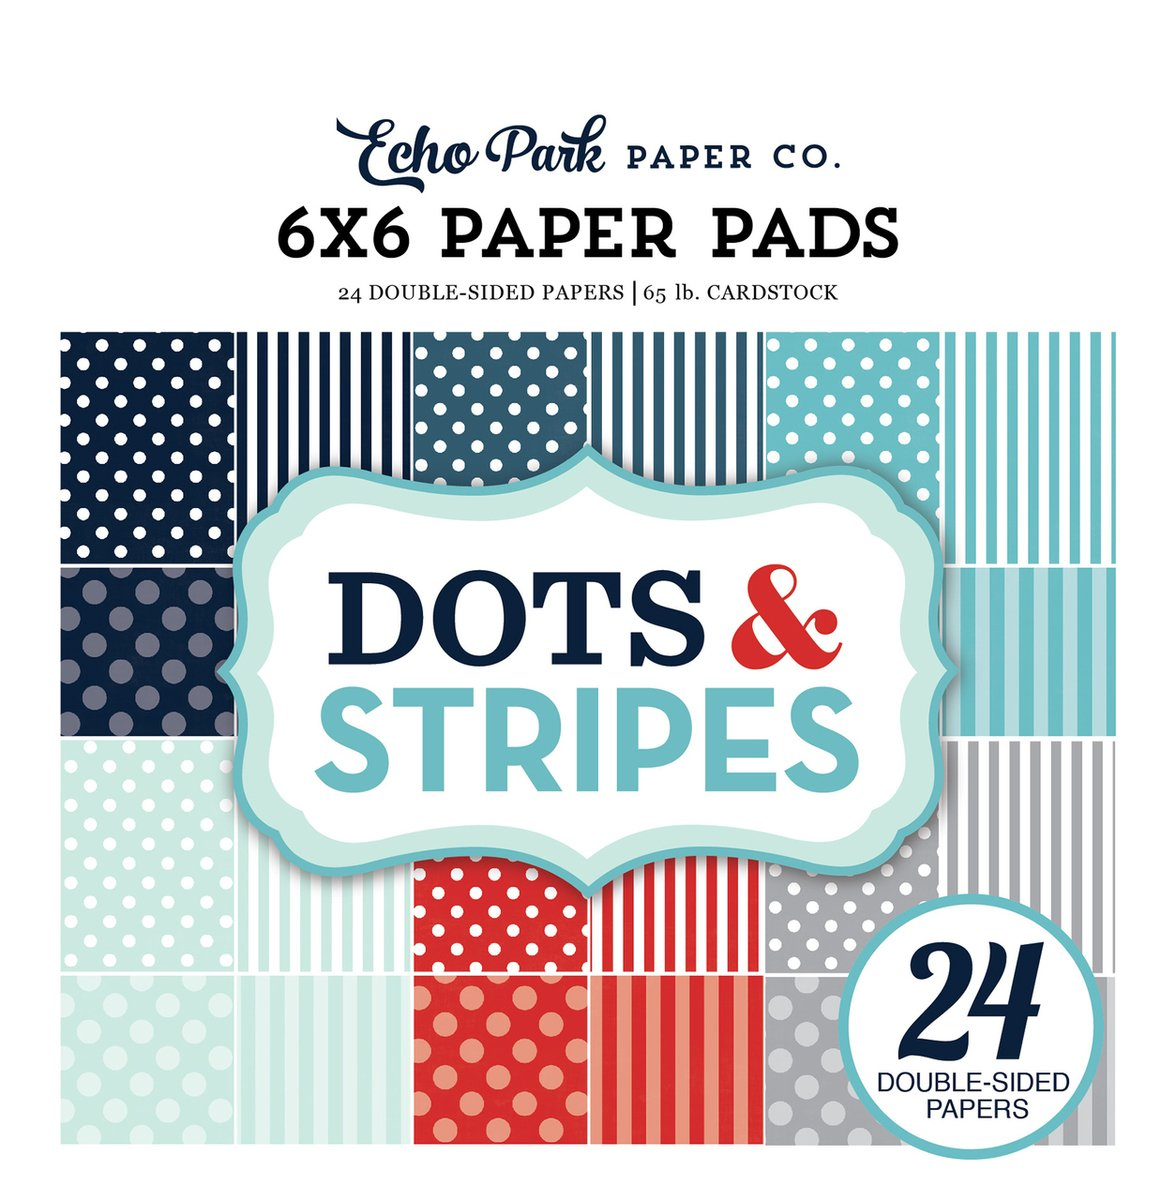 Echo Park 6 x 6 DS Winter Dots and Stripes, 24 pk Cardstock Paper